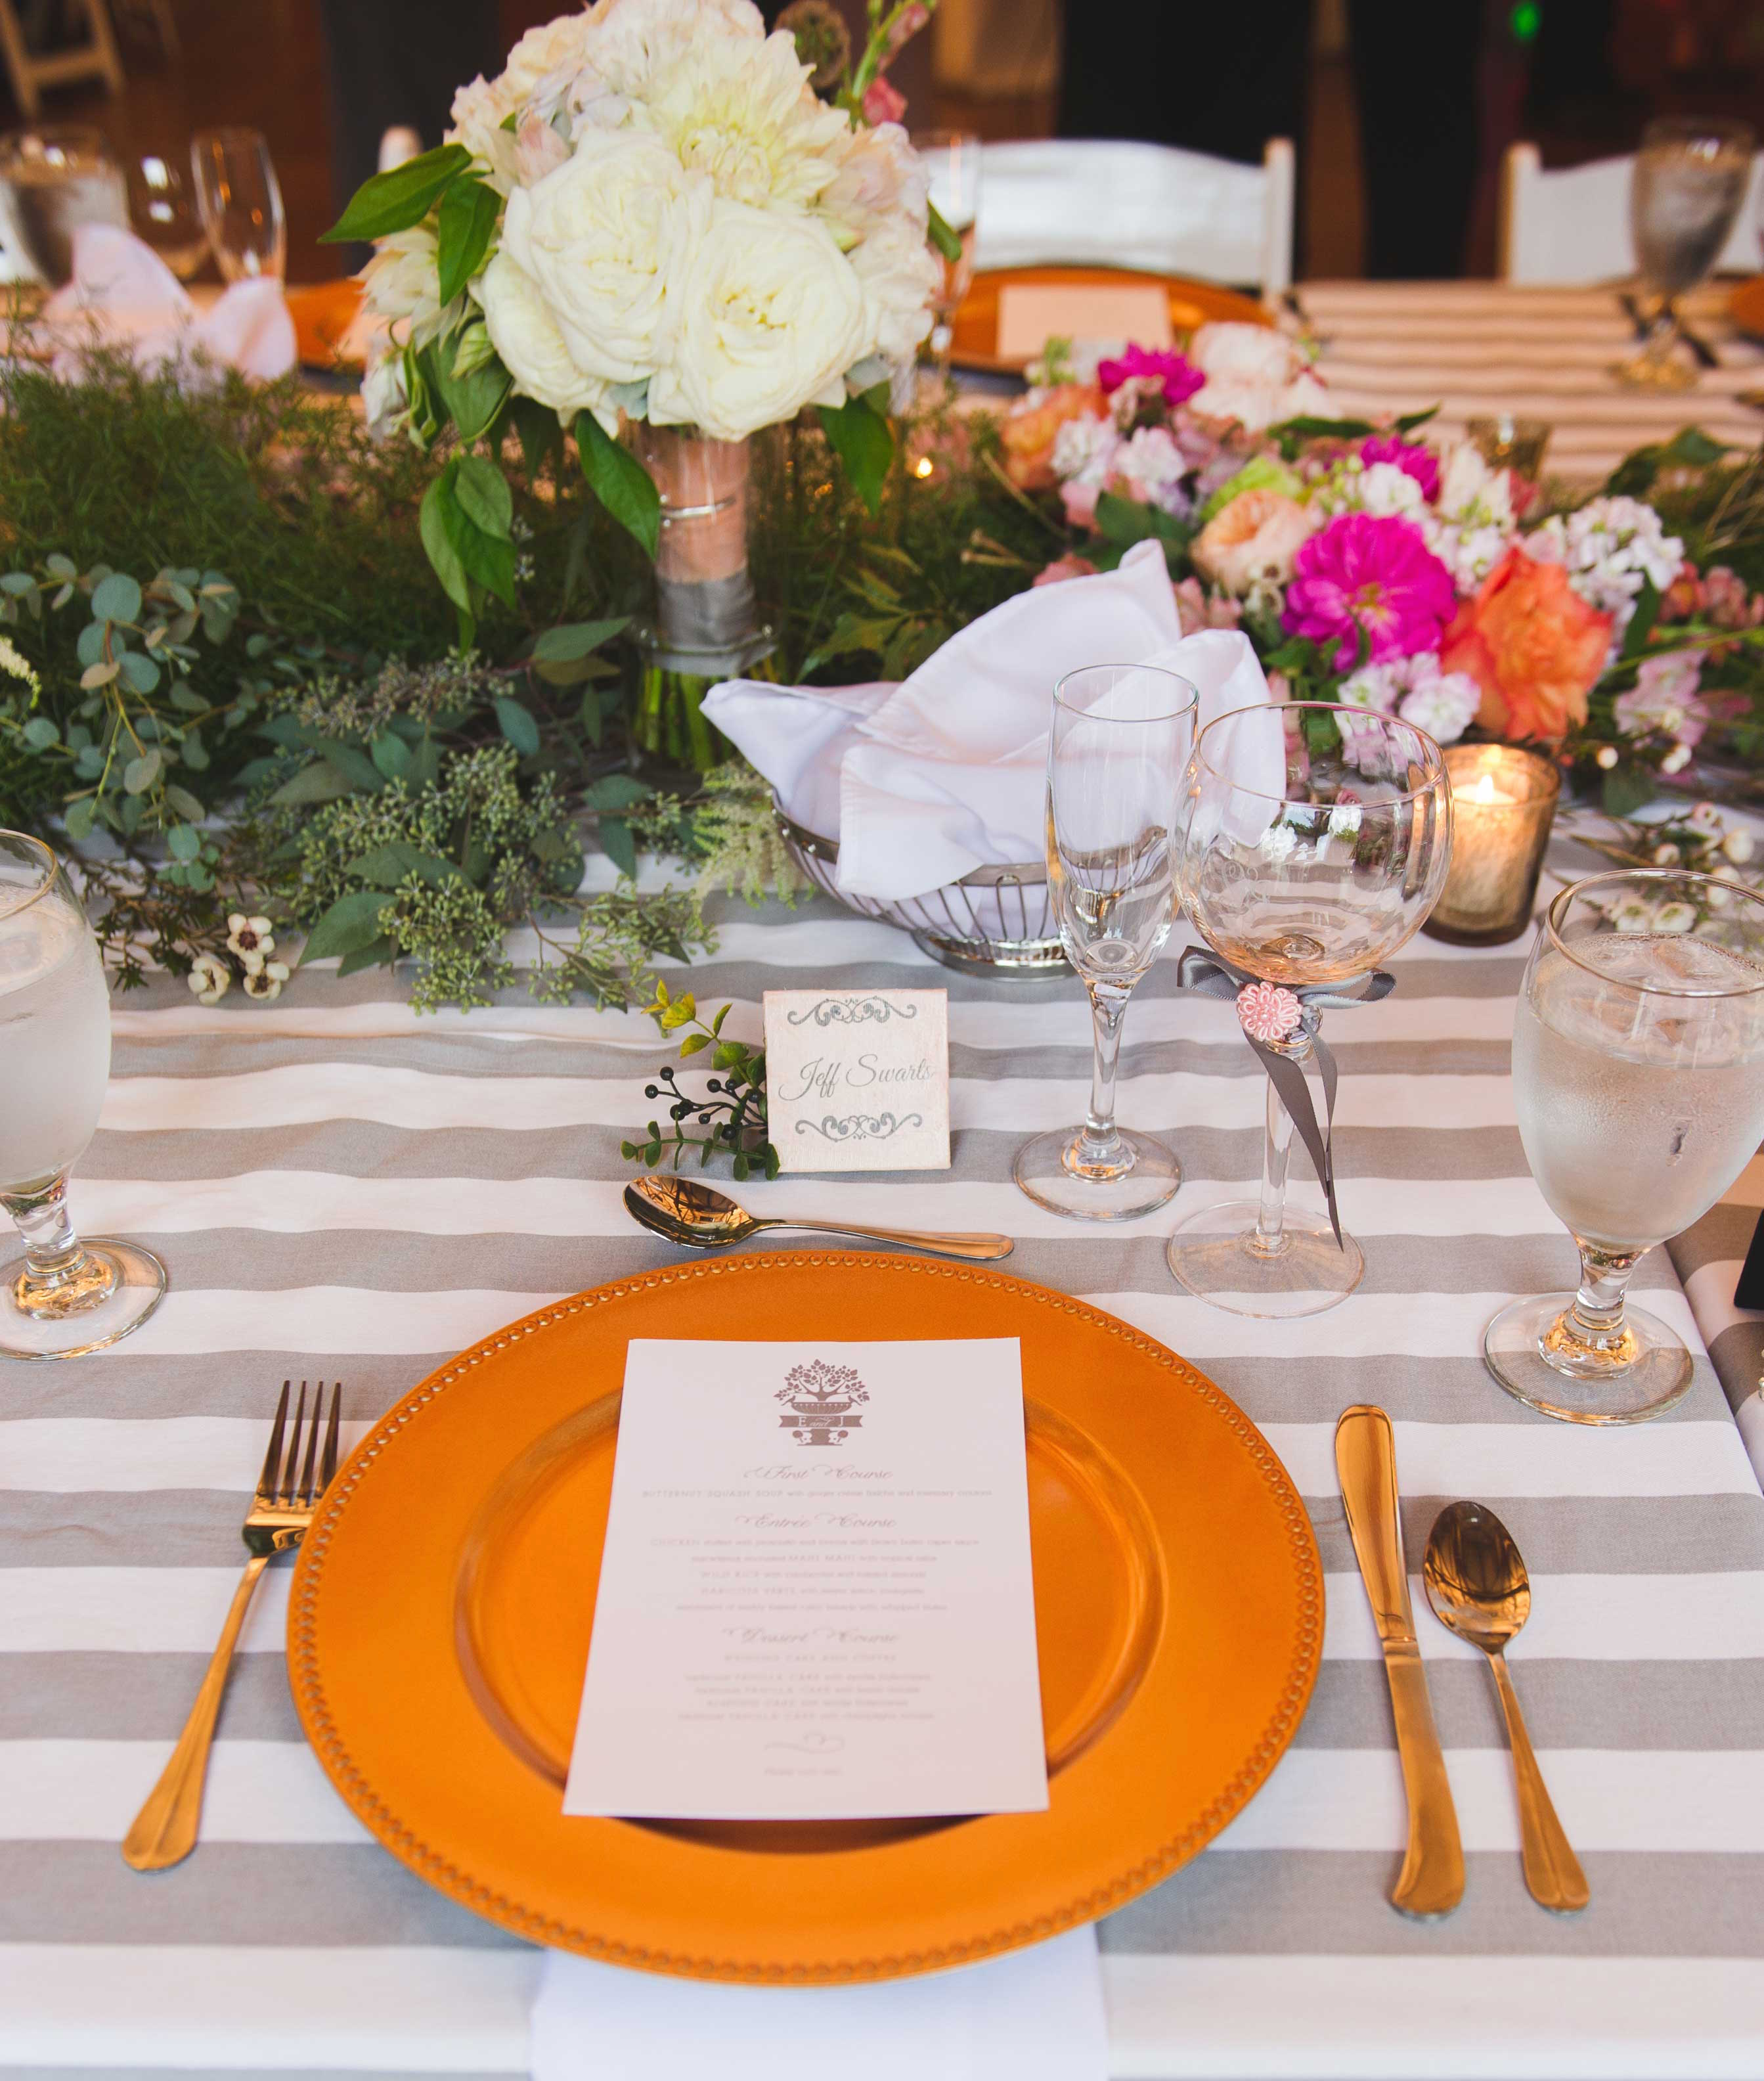 Grey and white striped reception linen